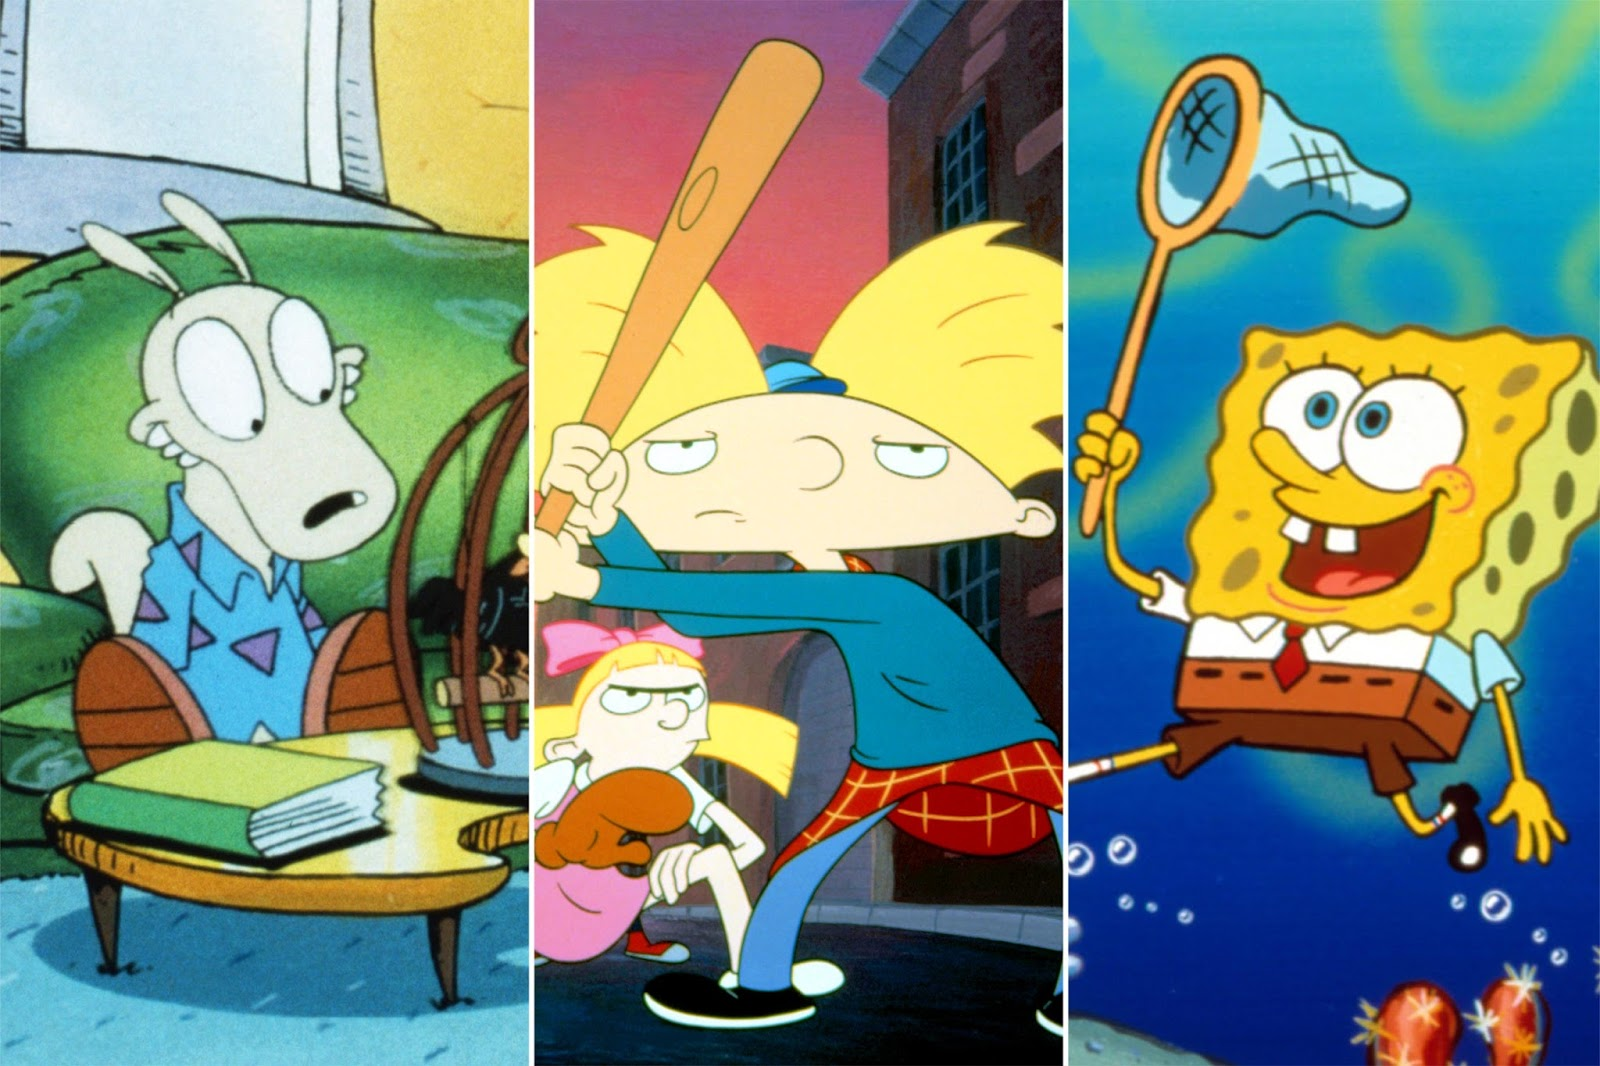 nickalive!: nickelodeon brings o-town, hillwood, bikini bottom, and